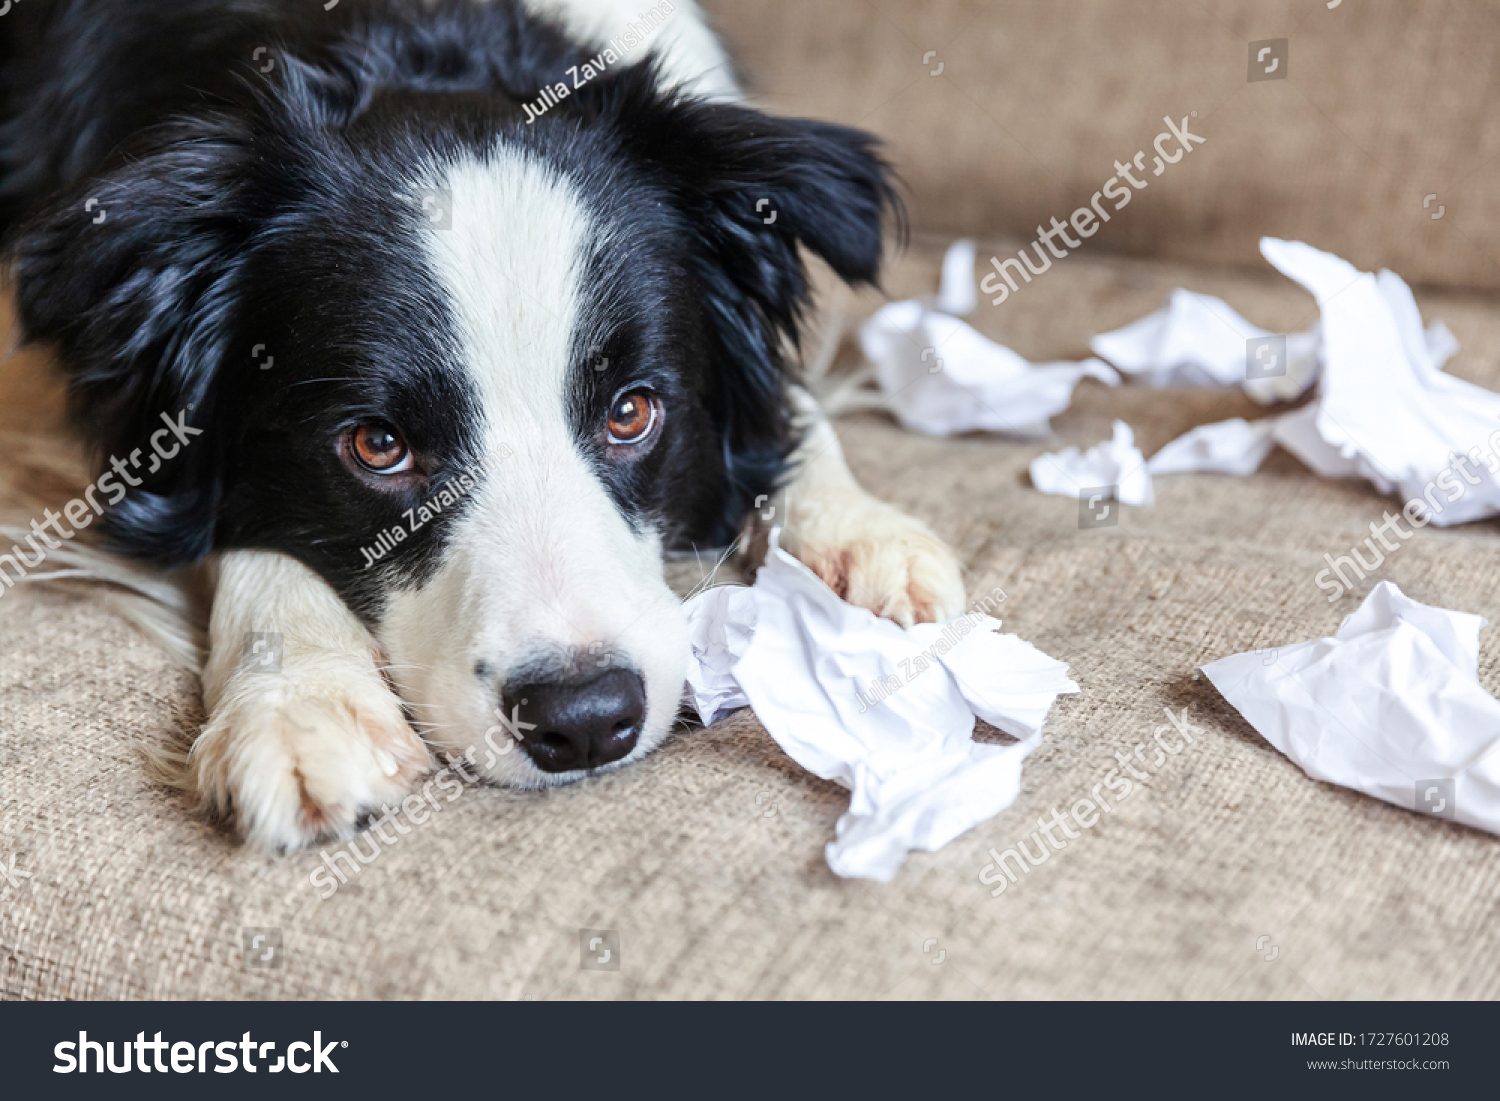 Naughty playful puppy dog border collie after mischief biting toilet paper lying on couch at home. Guilty dog and destroyed living room. Damage messy home and puppy with funny guilty look #1727601208